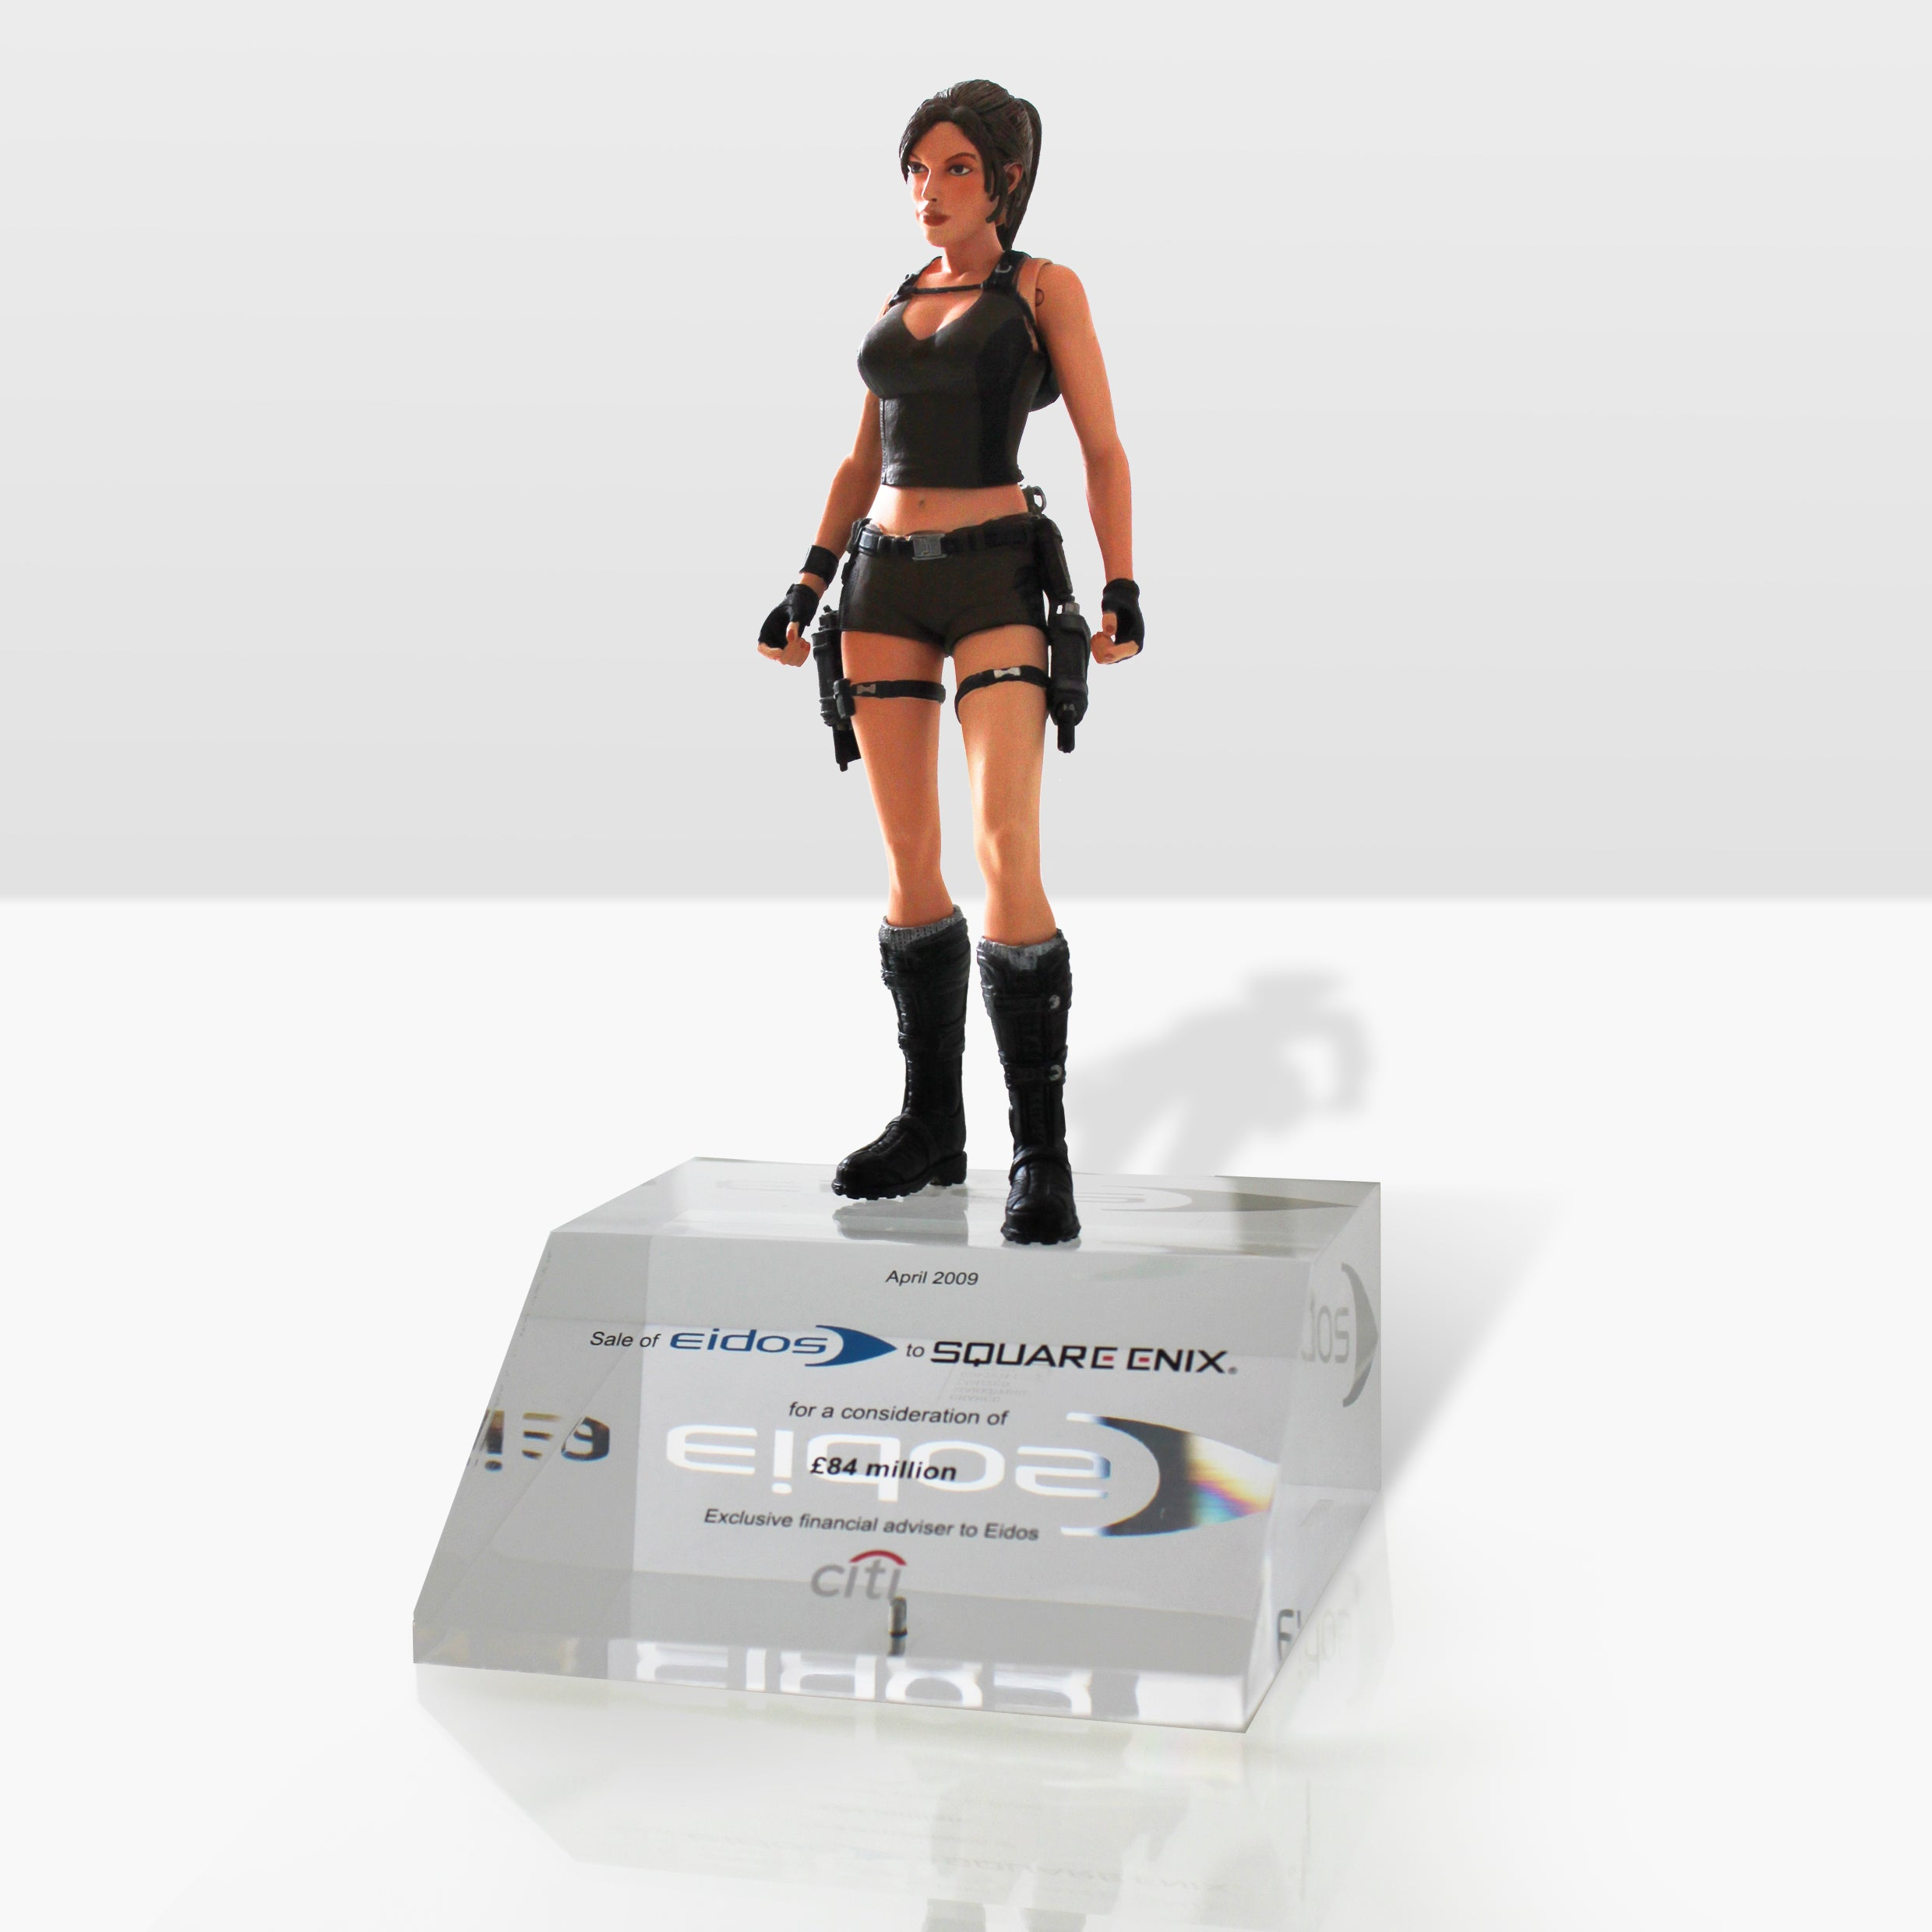 A photo of a Lara Croft figure on top of a glass base that was given to Eidos accounting employees after Square Enix acquired them